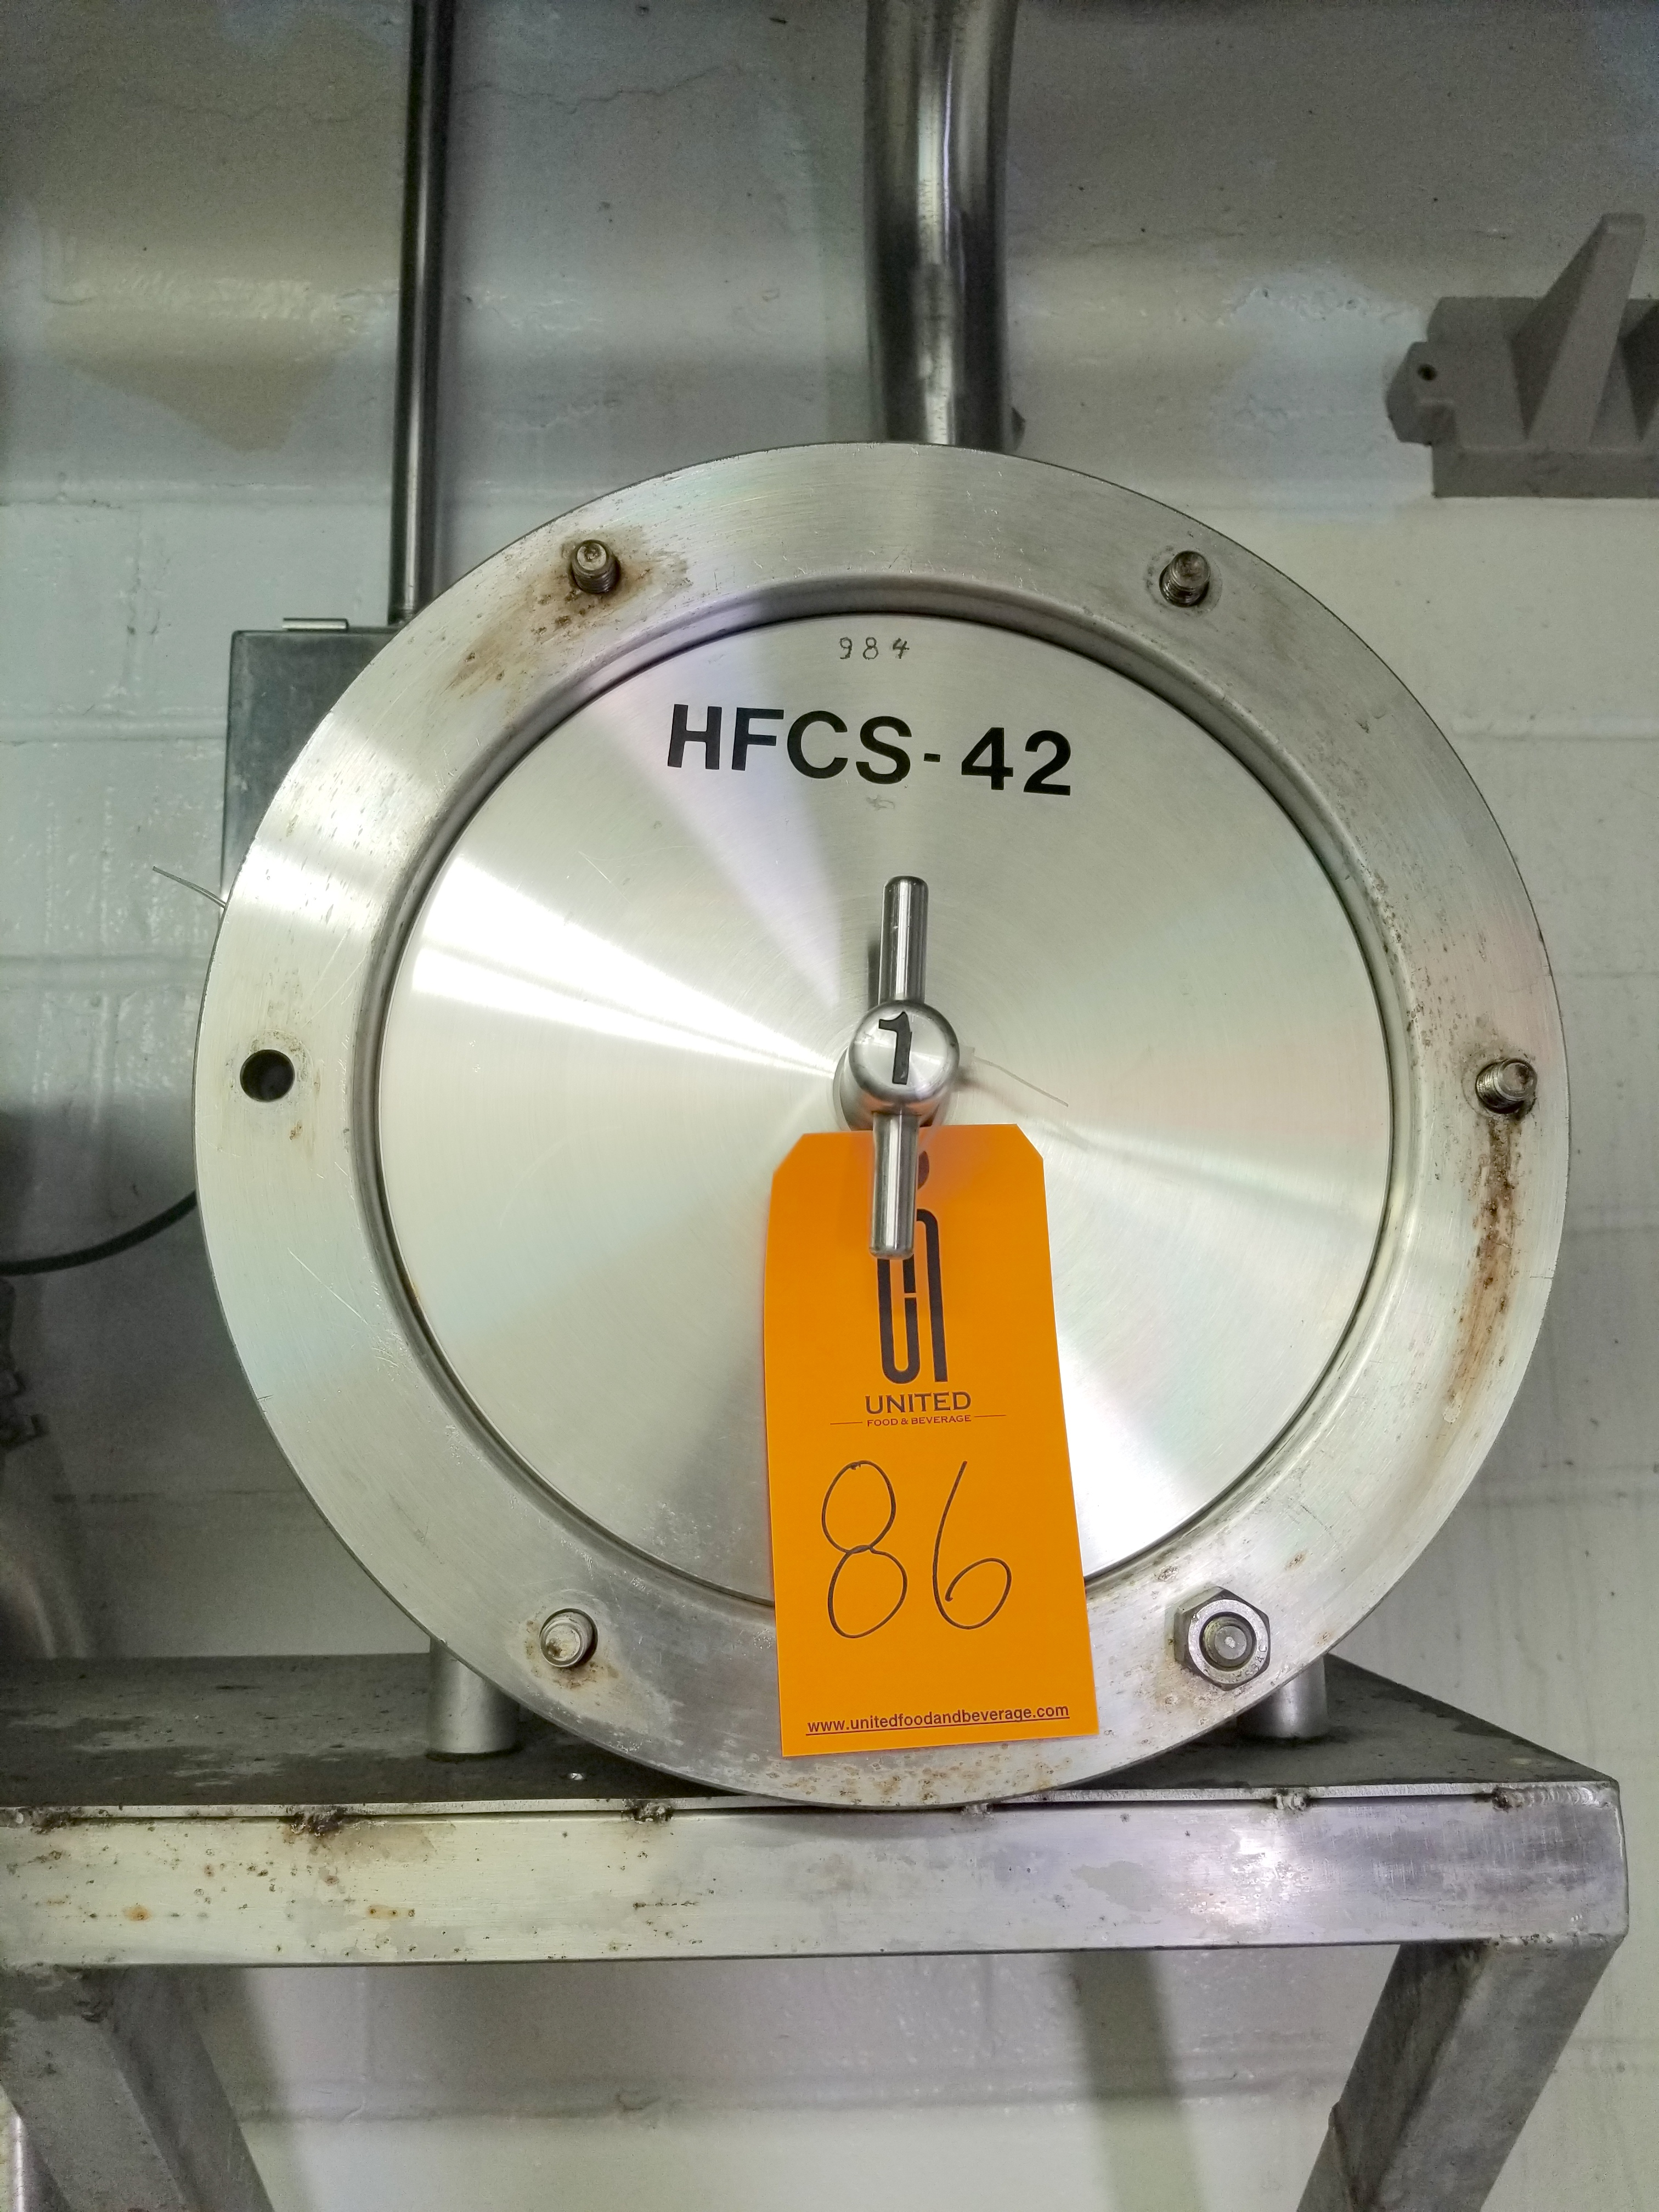 HCFS-42 Corn Syrup Flow Meter 3 Inch Connections